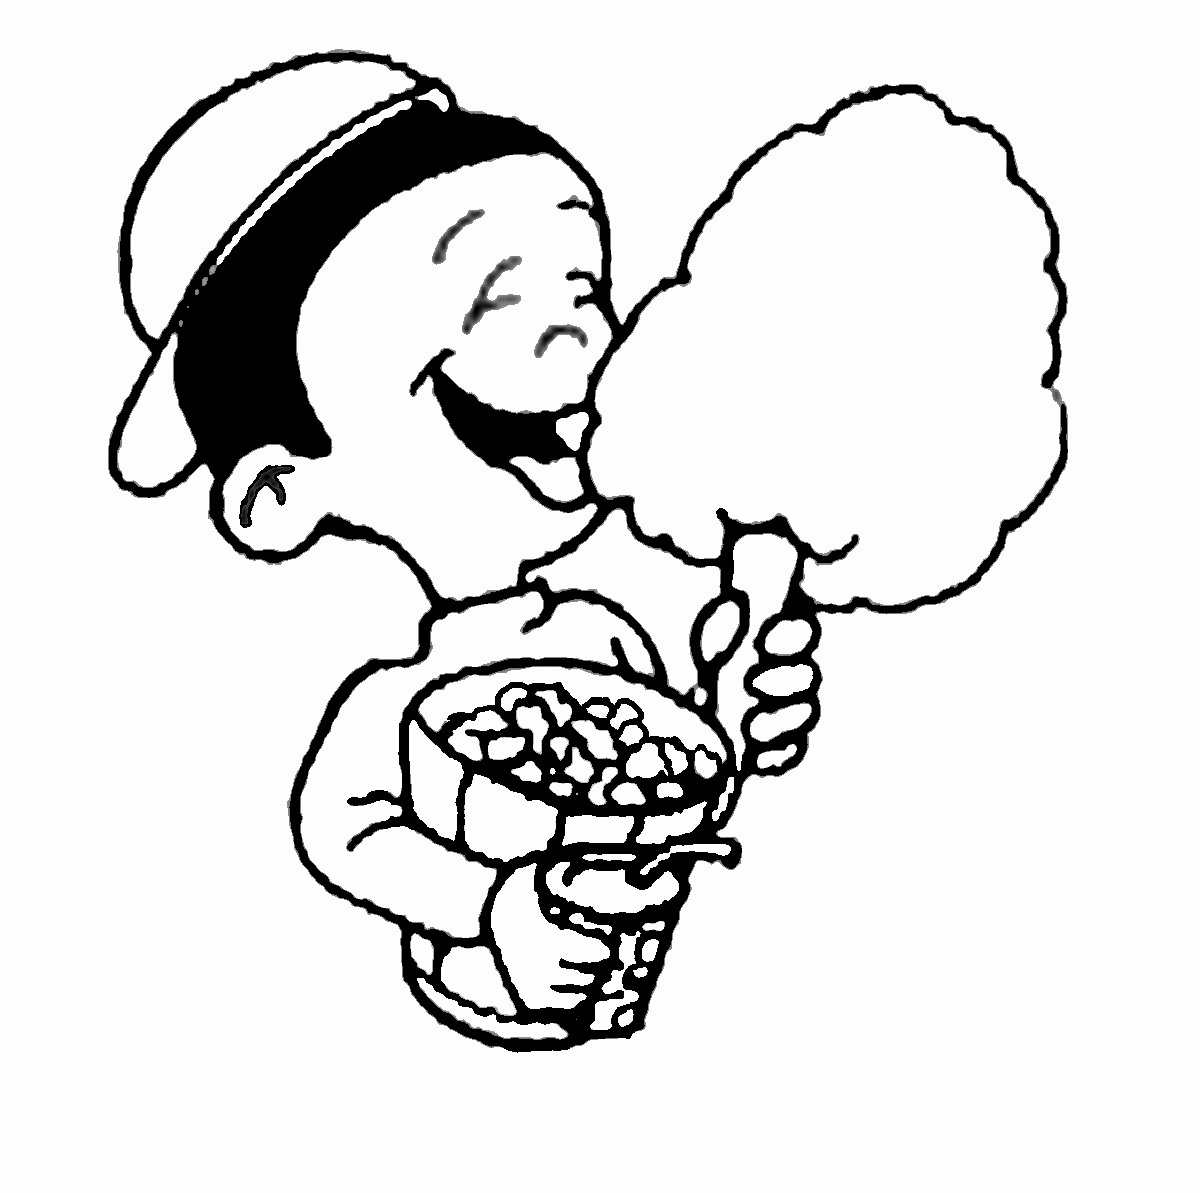 Cotton Candy Coloring Pages Free download best Cotton